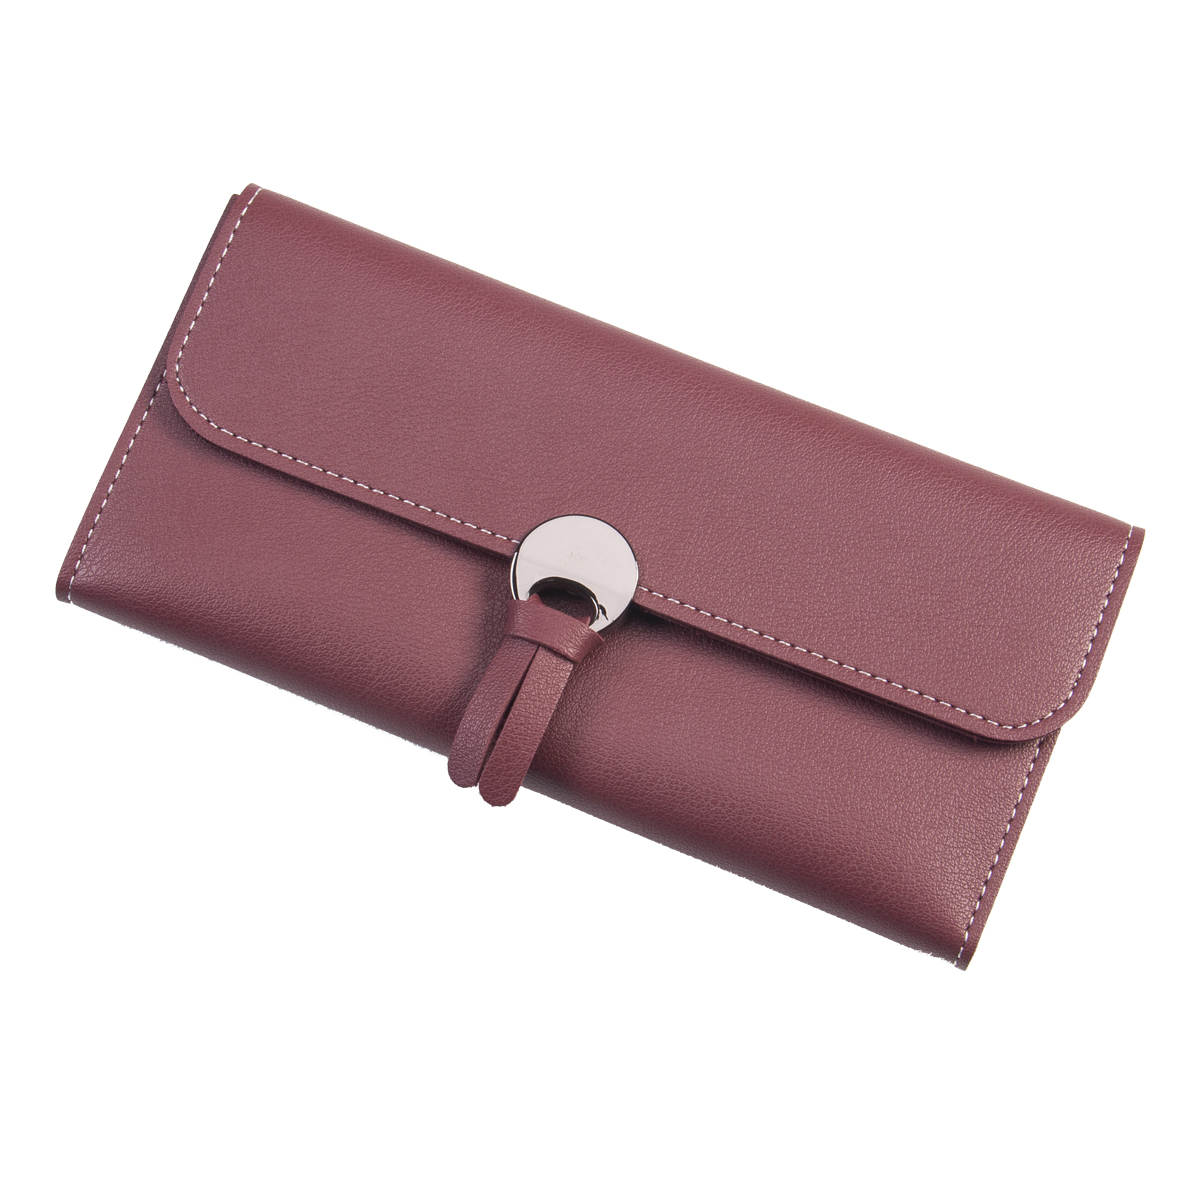 2017 Latest Women pu leather Long Wallet Female Coin Purse Hasp Purse Money Bag Card Holders Womens Wallets And Purses women wallets hello kitty bag purse leather long women s purse coin money bag ladies clutch bag card holder sac bolsas feminina